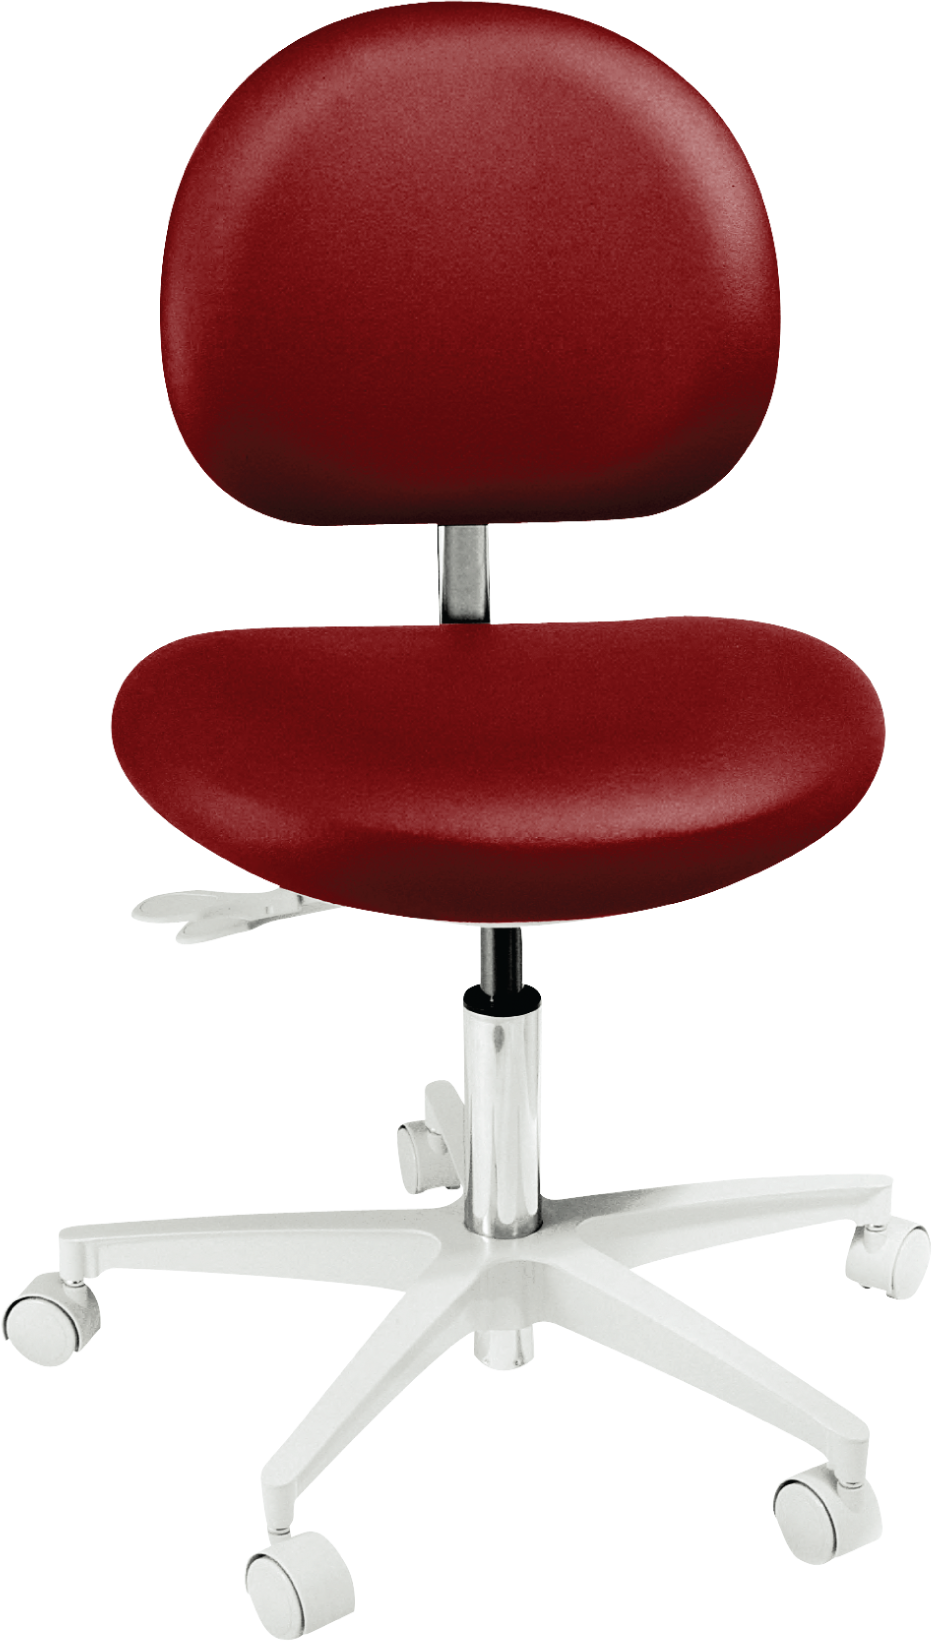 Dental assistant chairs - Stools